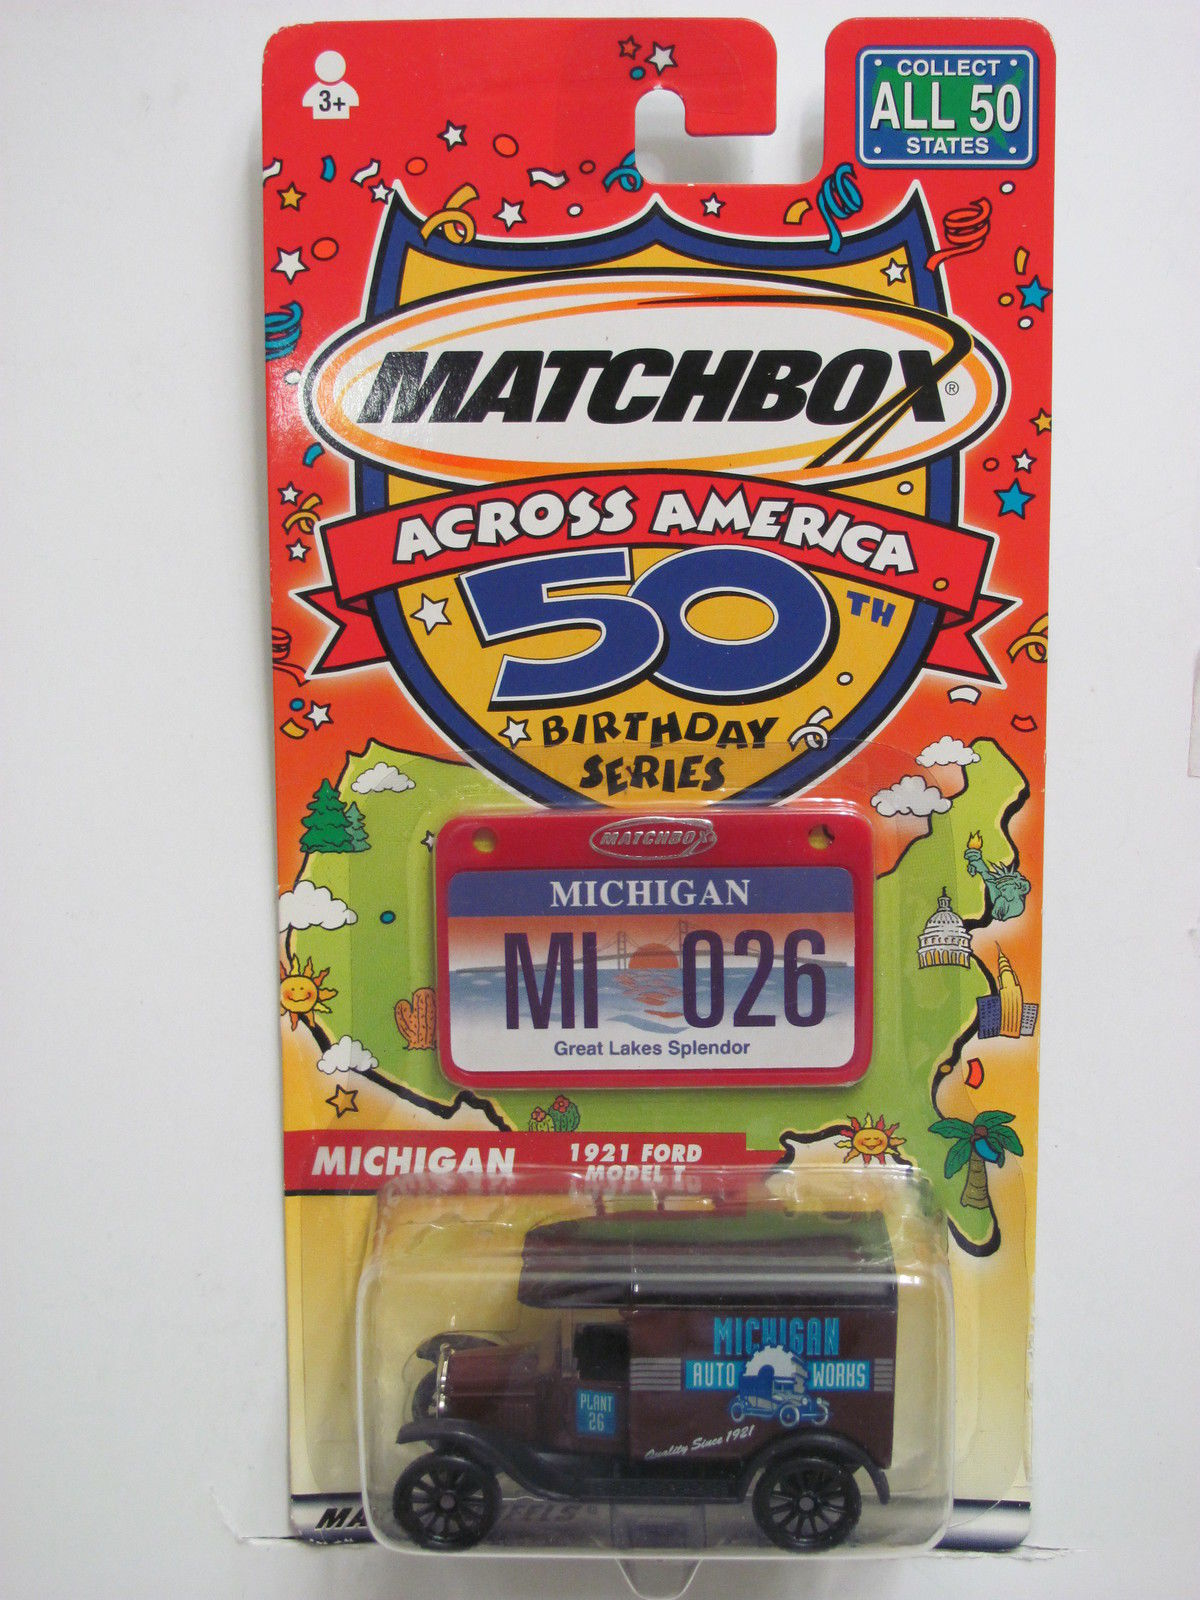 MATCHBOX ACROSS AMERICA 50TH BIRTHDAY SERIES MI 026 MICHIGAN